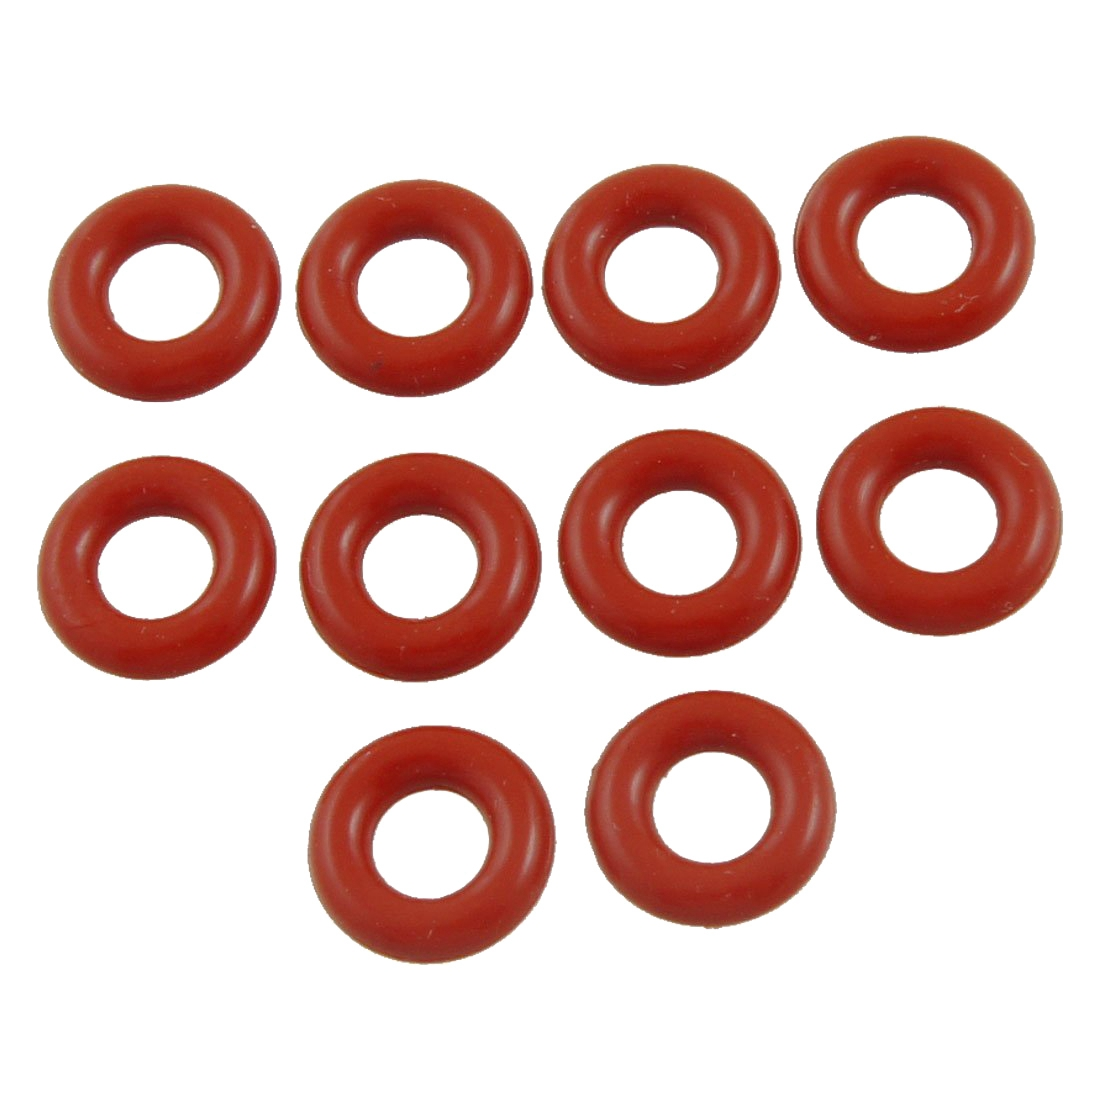 10mm x 3mm Silicone O Ring Oil Sealing Washers, Red, 10 Pieces